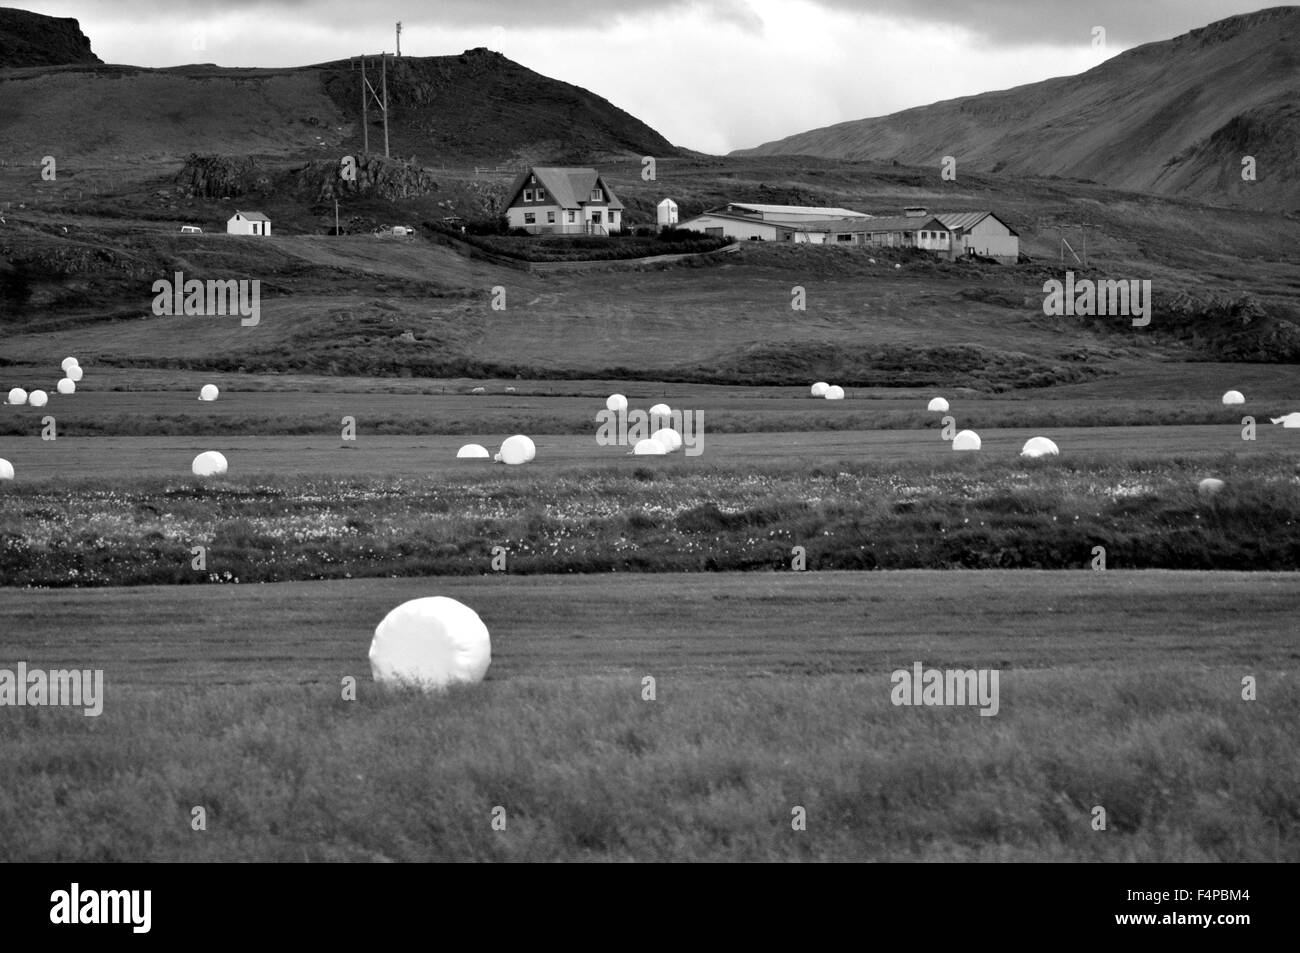 Iceland, Icelandic Holiday, Land of Fire and Ice, The Great Outdoors, making Hay, hay bails - Stock Image